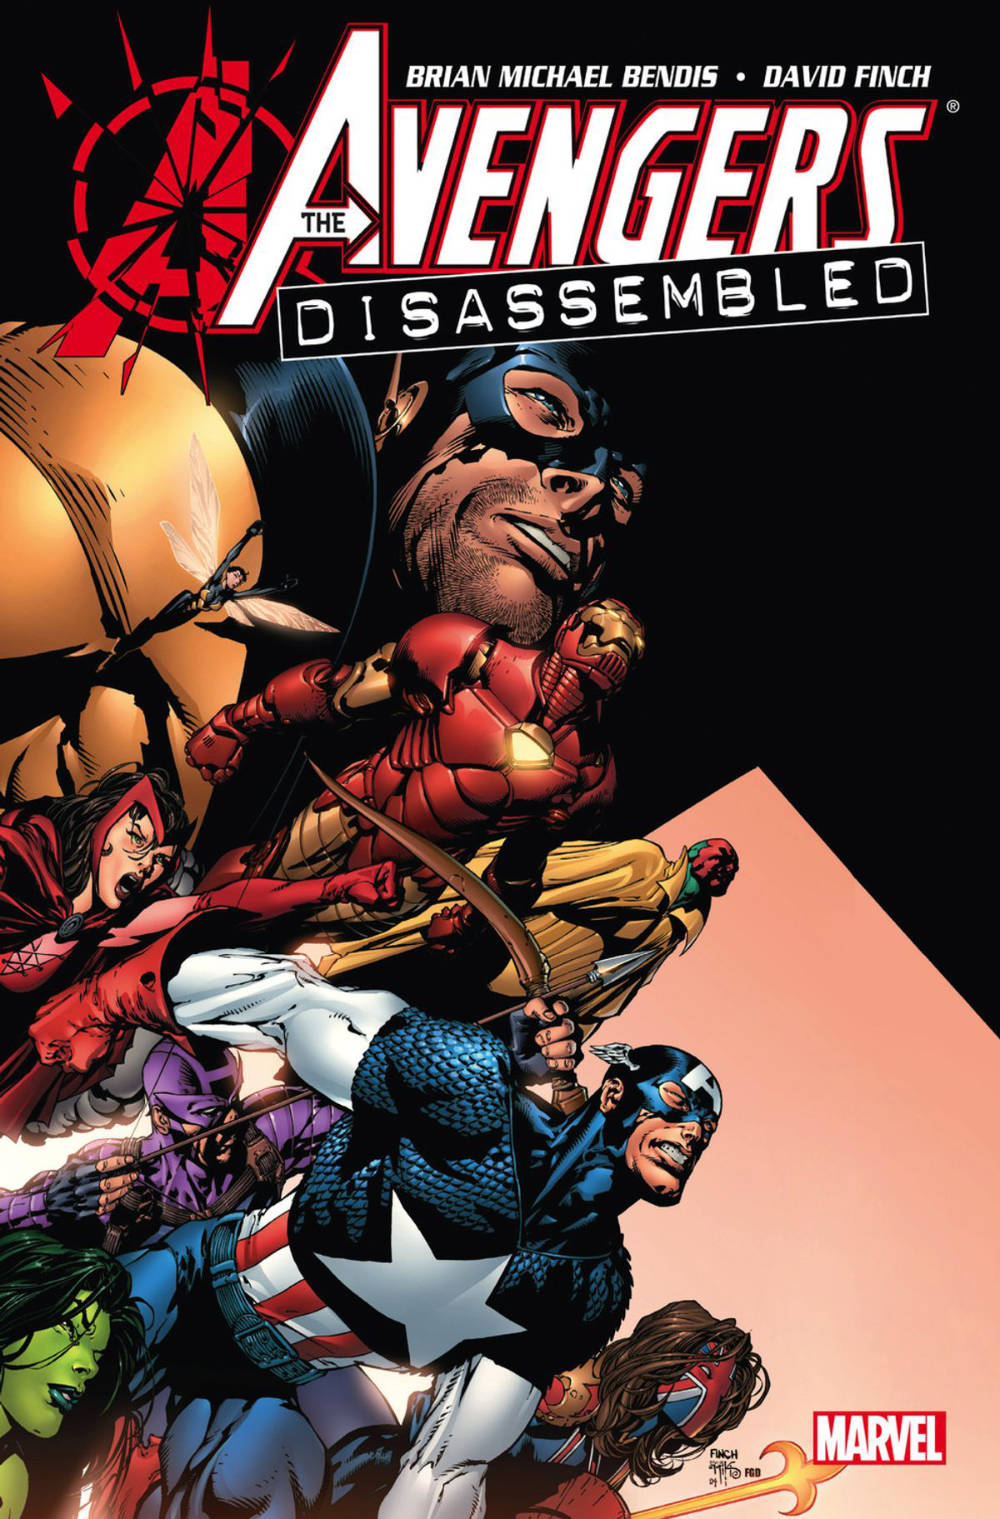 From A Library – Avengers: Disassembled